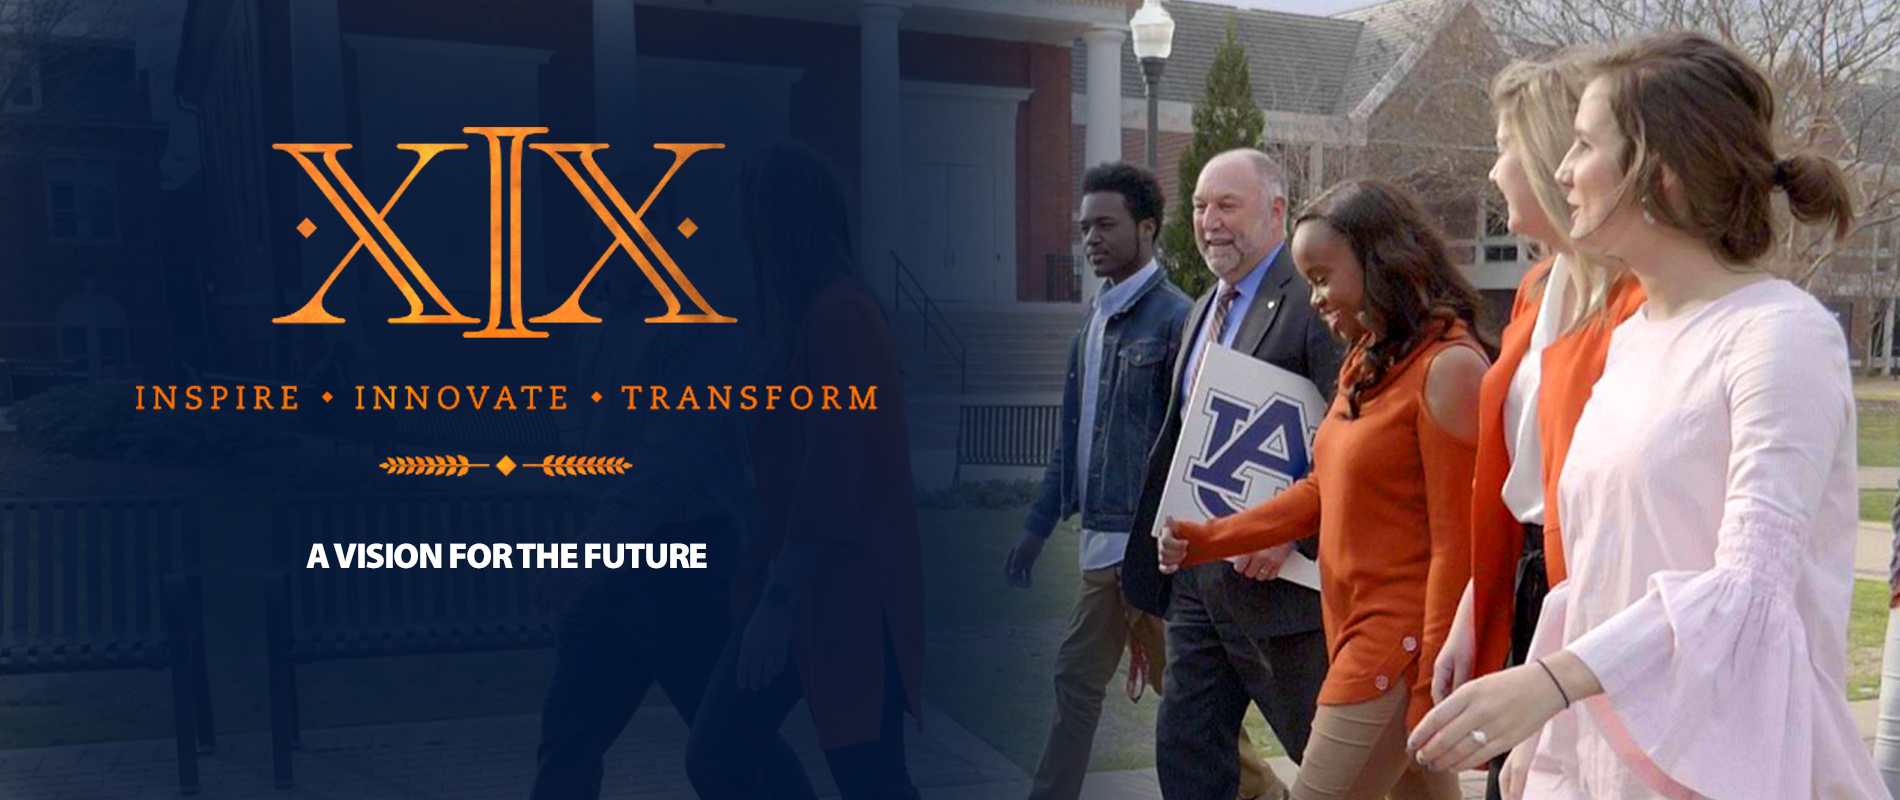 A vision for the future Dr. Leath will be installed as Asuburn University president during a March 29 ceremony in Auburn Arena.